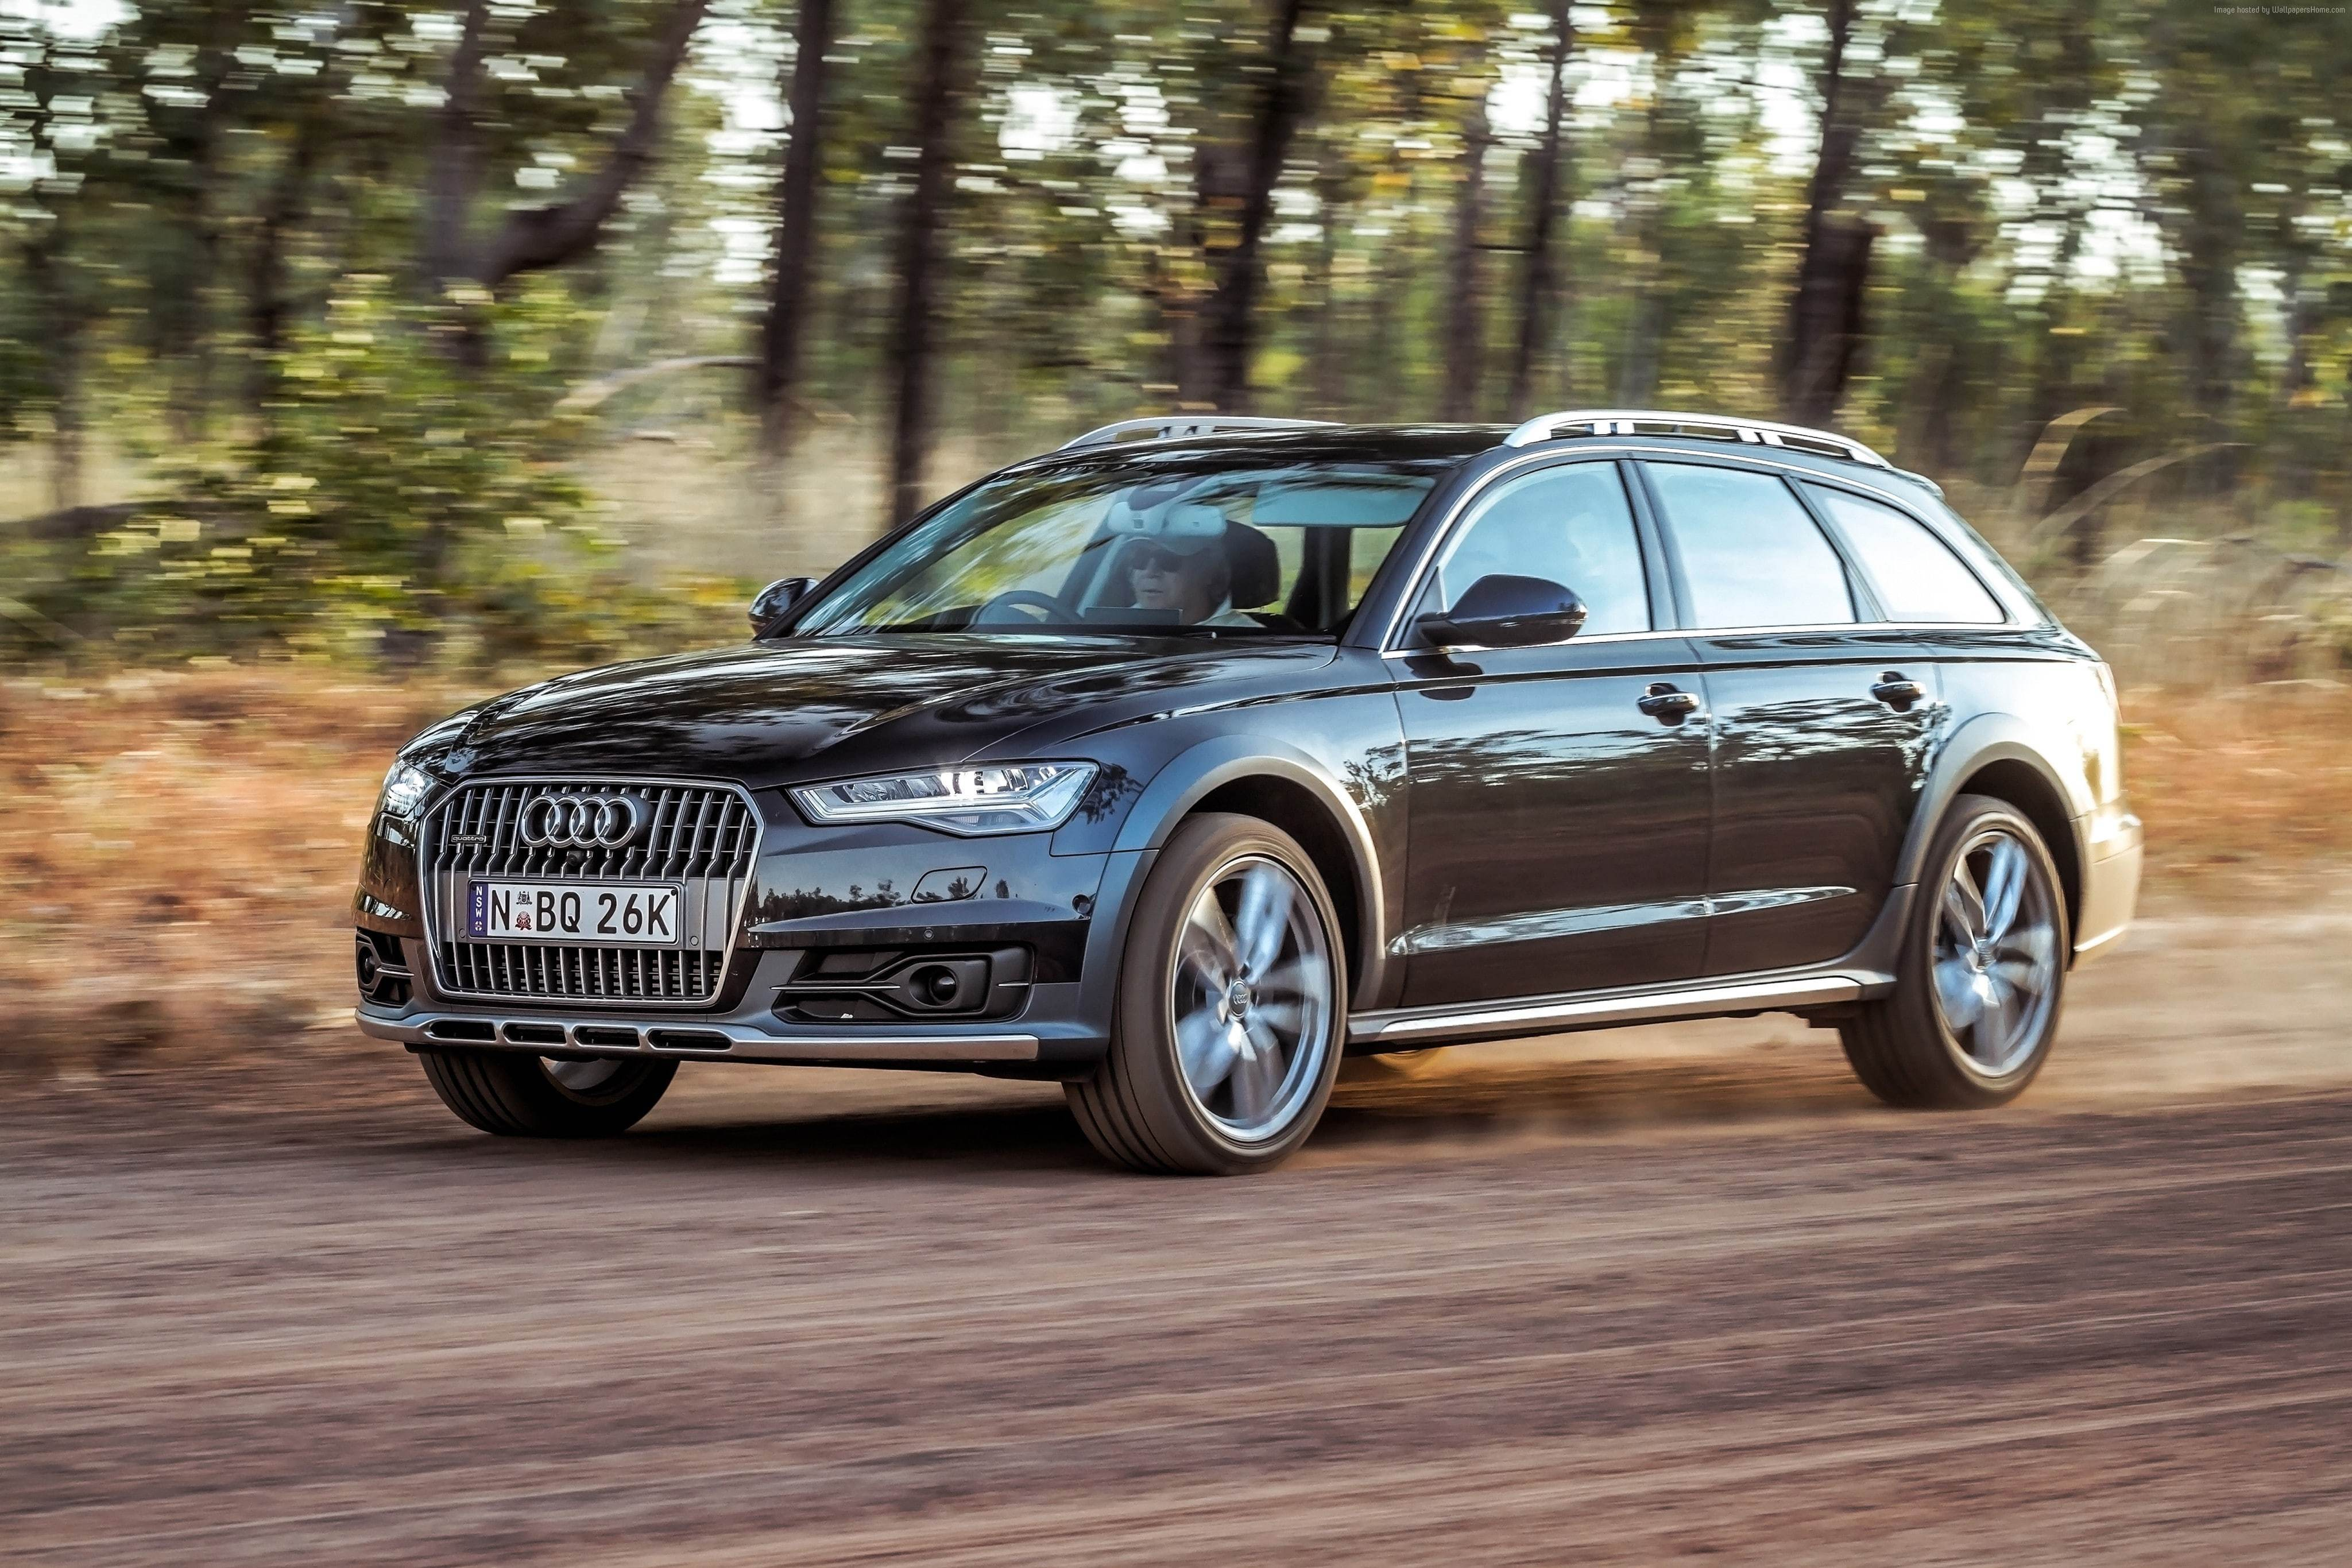 Hd Wallpaper 2016 Allroad Quattro Audi A6 Flare - CityConnectApps